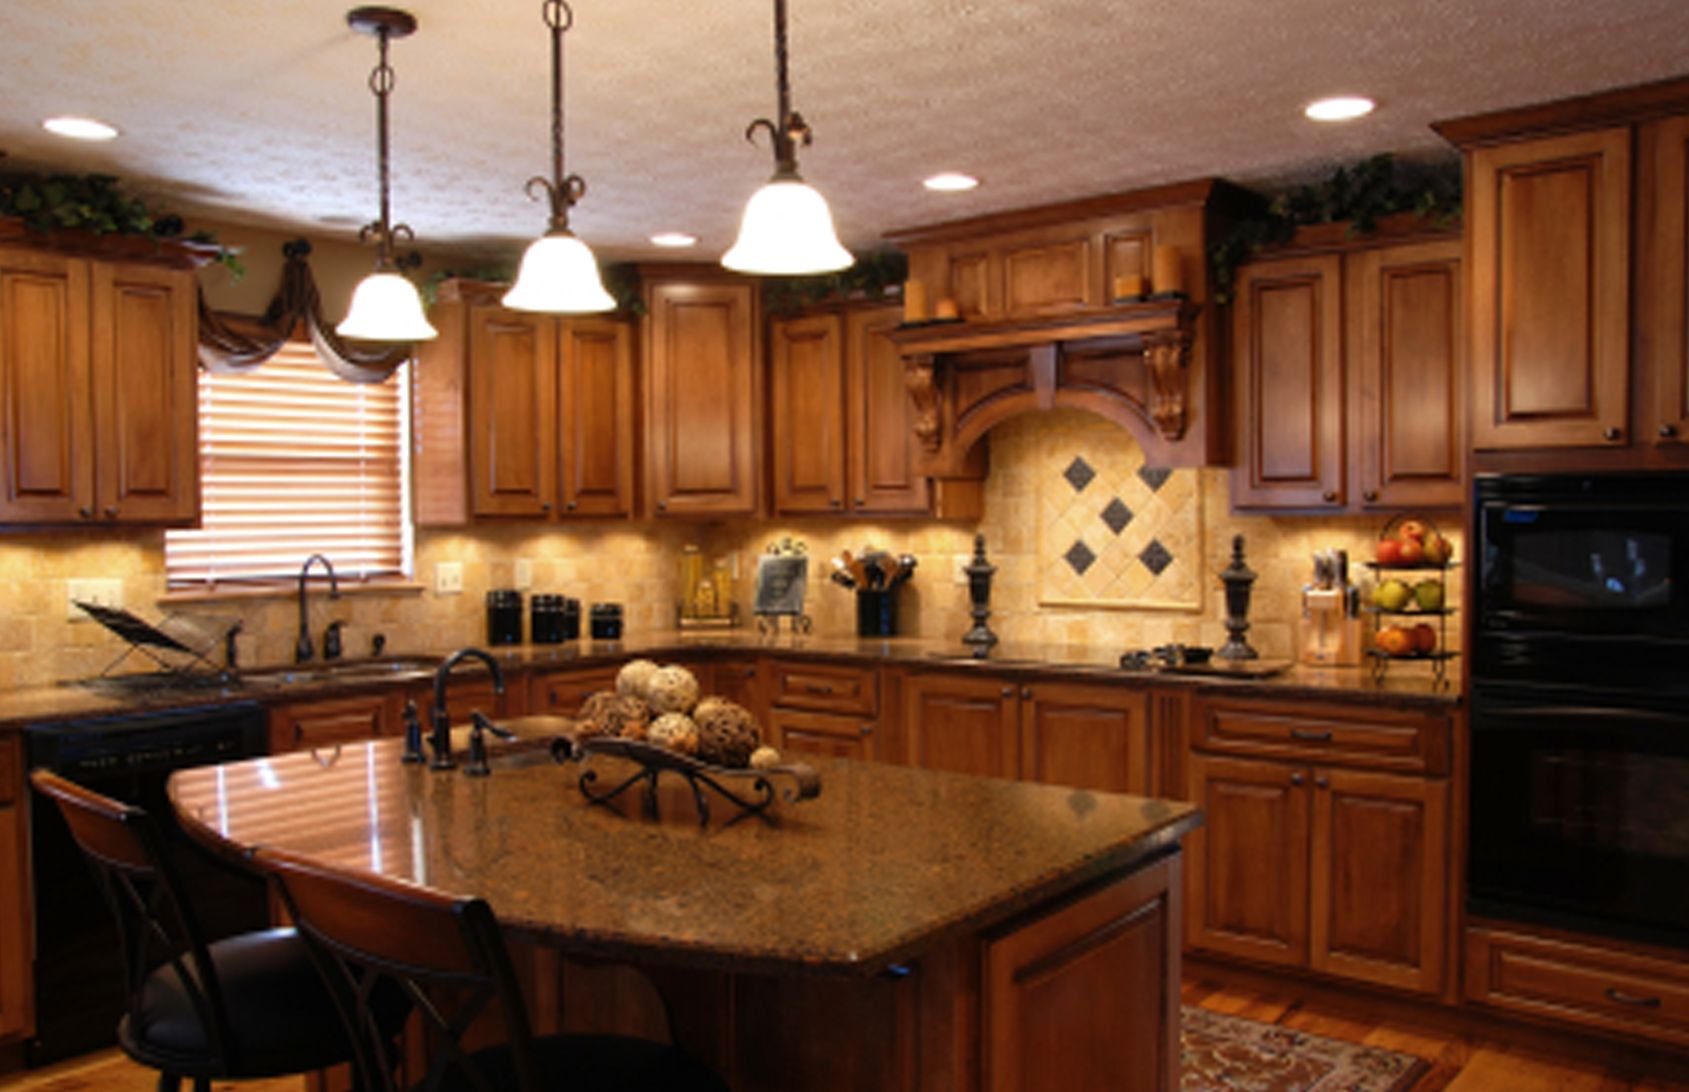 Tuscan Kitchen Design 29 Cool Designs Tuscany Is A Region In Italy Famous For Its Scenery Heritage And Art Of Cooking